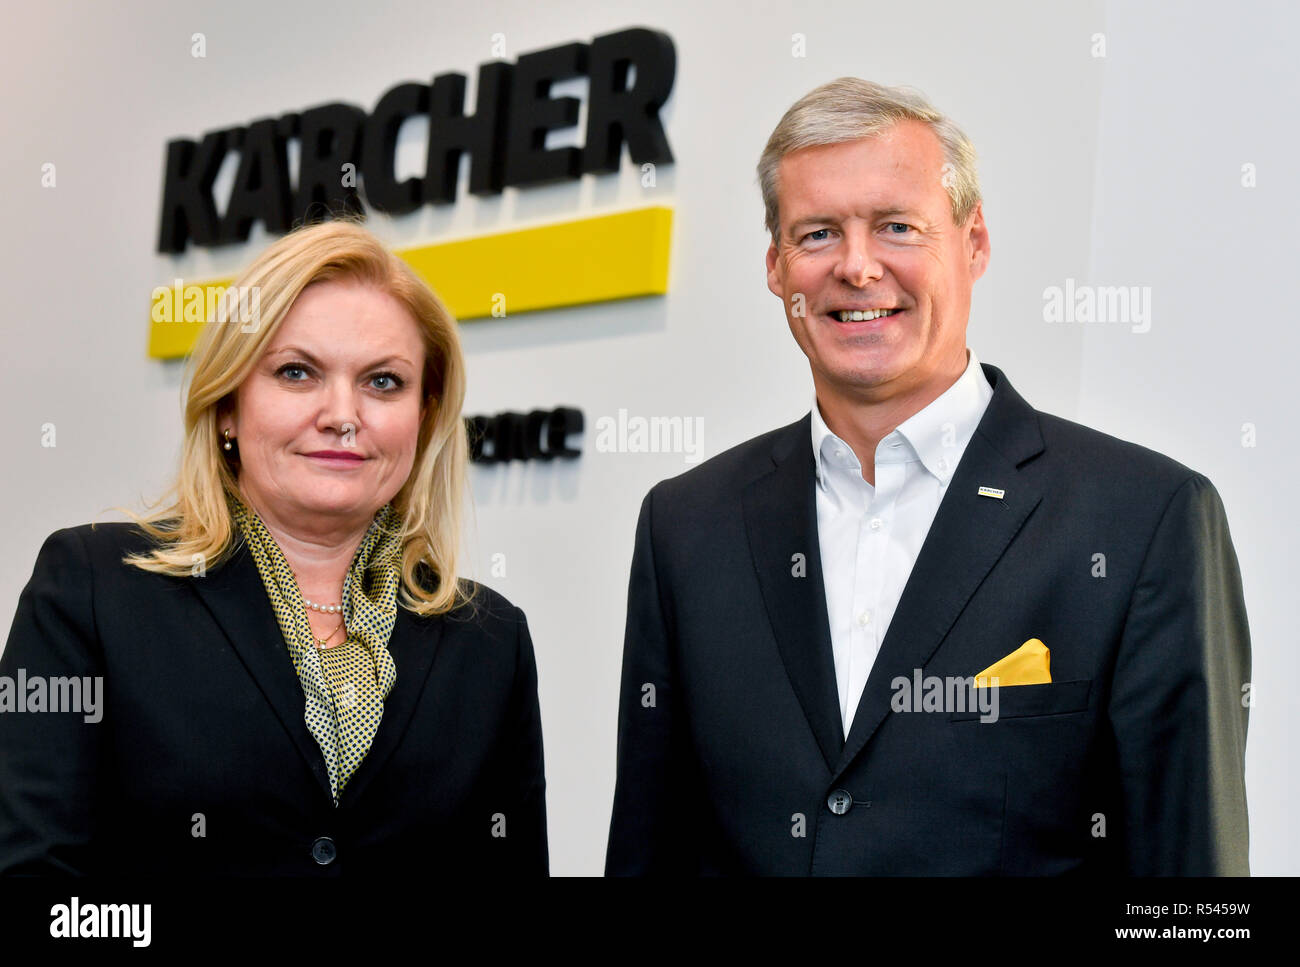 Karcher CR, a company specialising in the development, production and sales of cleaning devices, saw its sales rise by 15 percent to Kc592.3m last year, its net profit growing by 11.5 percent to Kc39.9m, company executive Milada Skutilova, left, told in Prague, Czech Republic, November 29, 2018. Karcher CR today opened its new seat in Modletice near Prague, the construction of which has cost Kc140m. At right is HARTMUT JENNER. (CTK Photo/Vit Simanek) - Stock Image